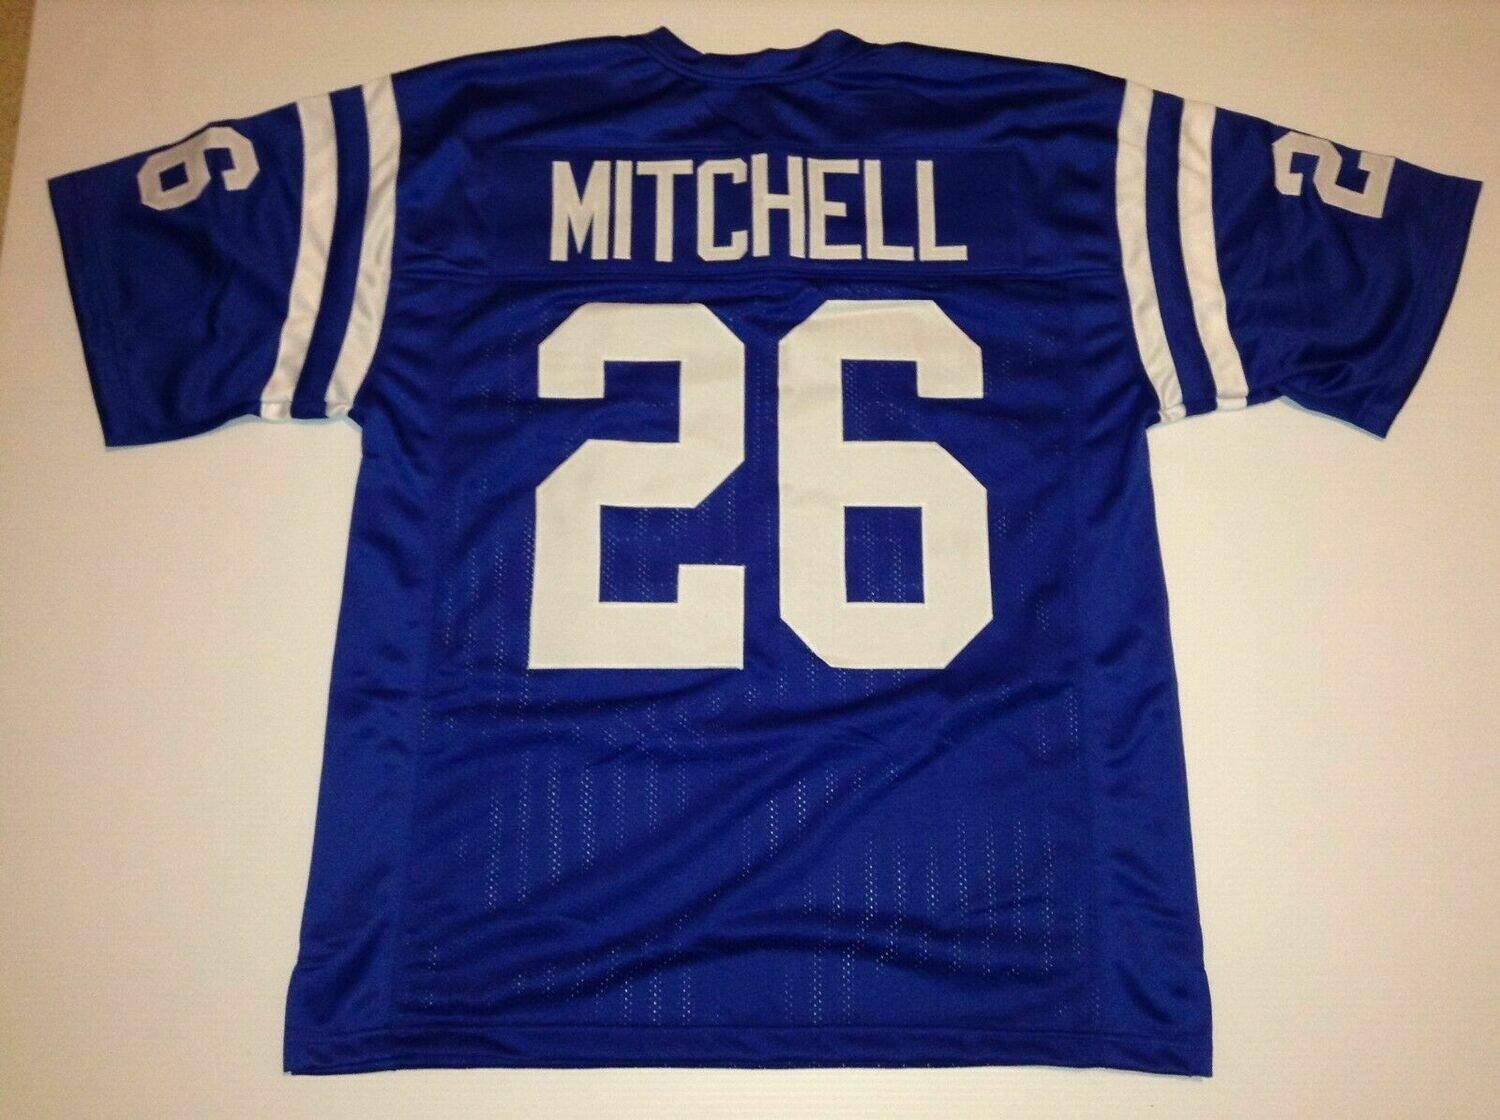 UNSIGNED CUSTOM Sewn Stitched Lydell Mitchell Blue Jersey